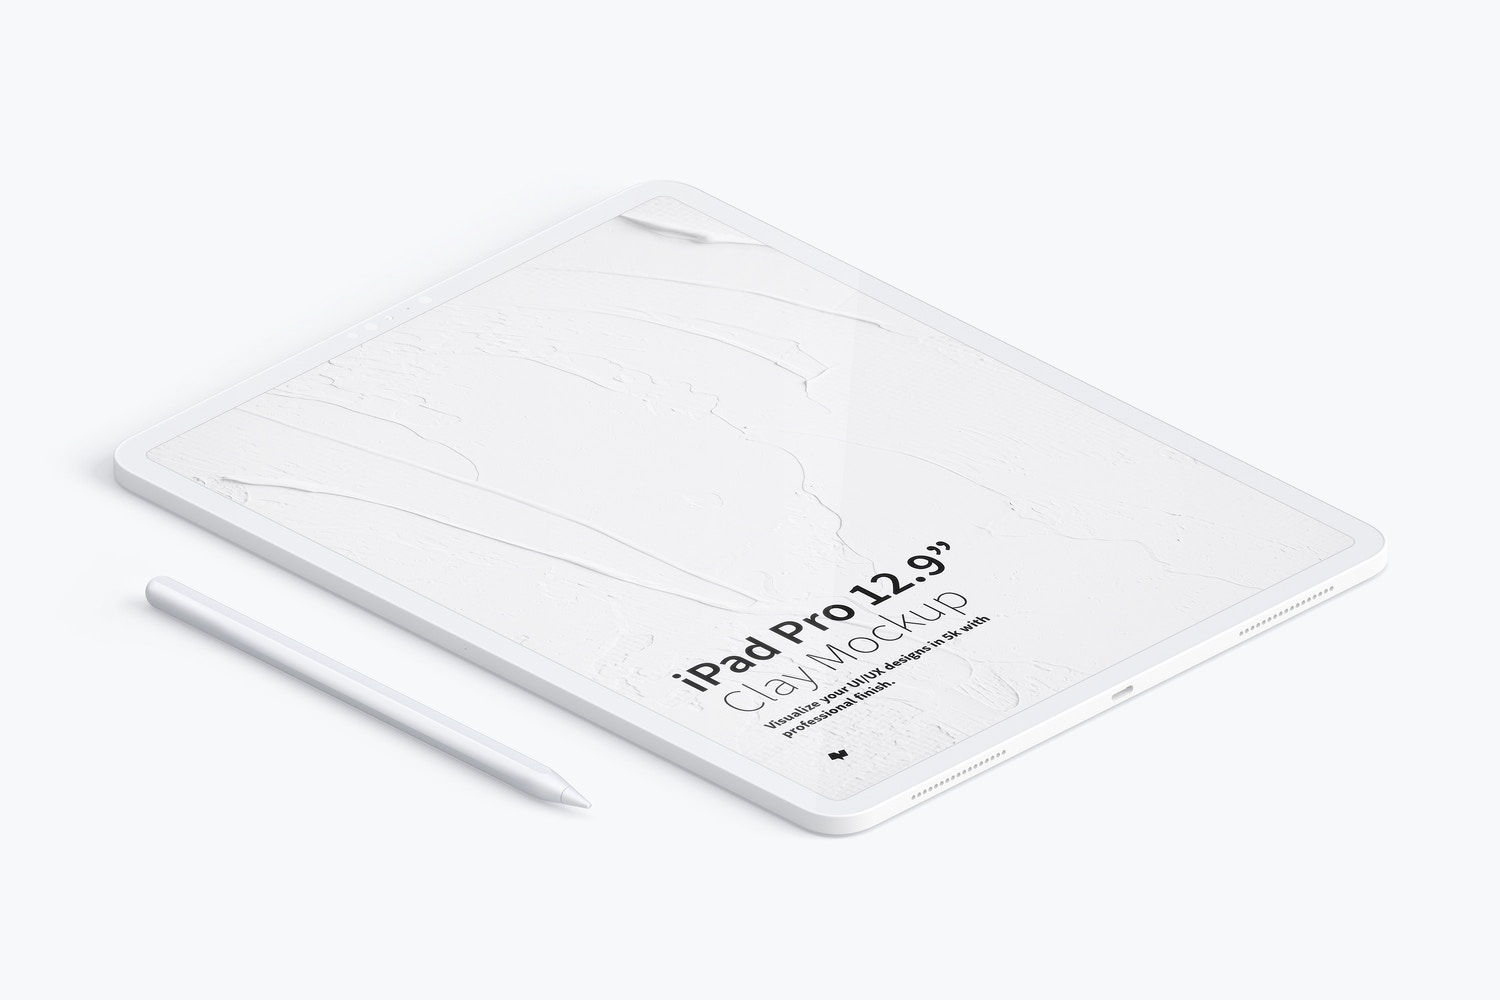 "Clay iPad Pro 12.9"" Mockup, Isometric Left View by Original Mockups on Original Mockups"